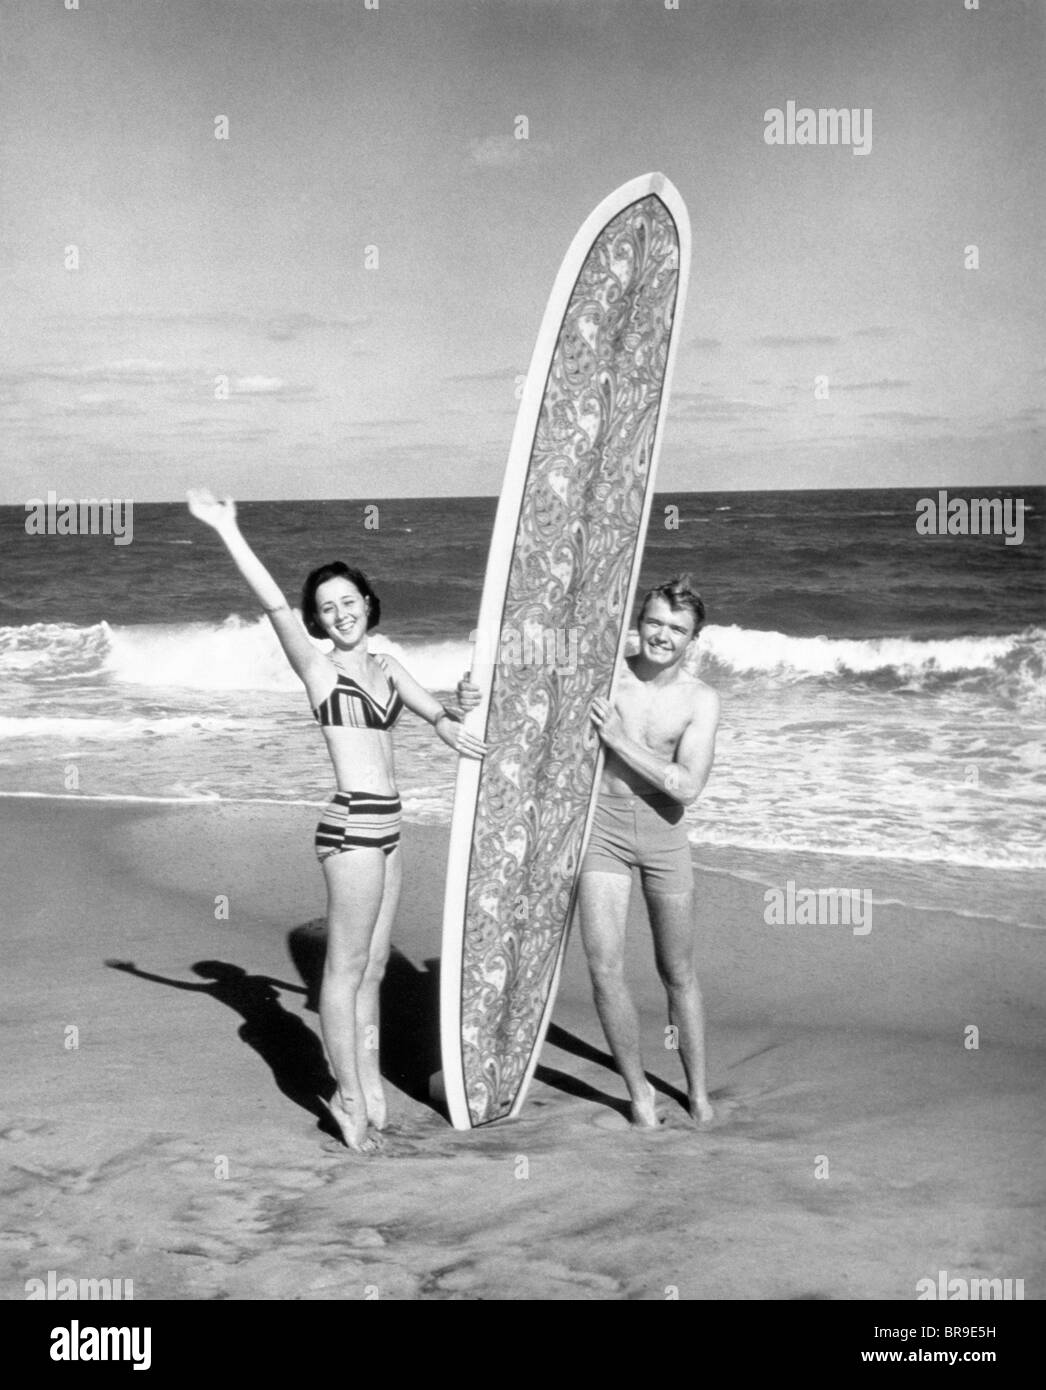 1950s COUPLE MAN WOMAN STANDING HOLDING BIG BOARD SURFBOARD ON THE BEACH LOOKING AT CAMERA - Stock Image